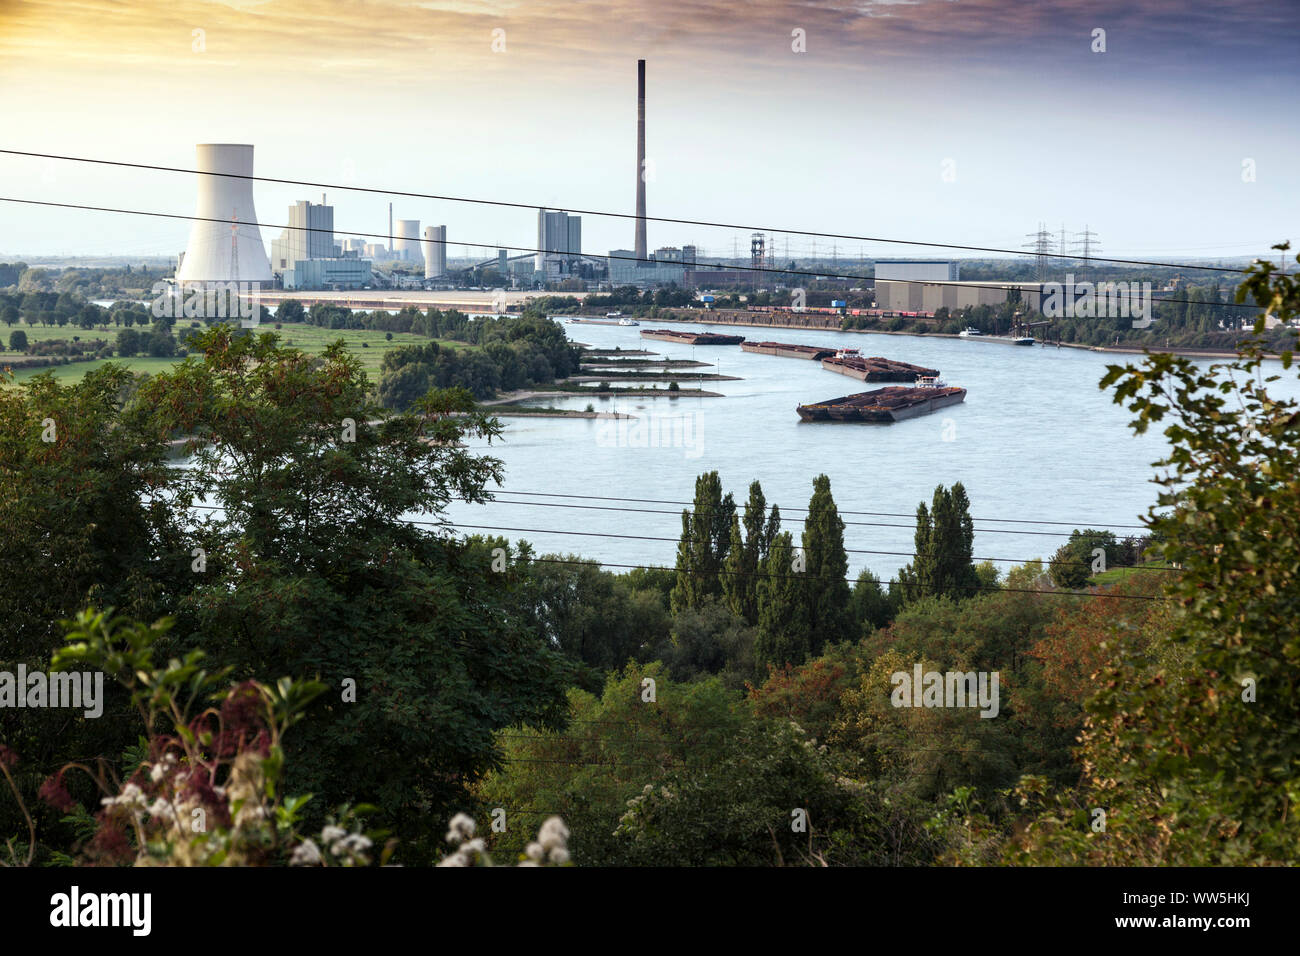 View over the Rhine to the power plant in Voerde. Stock Photo